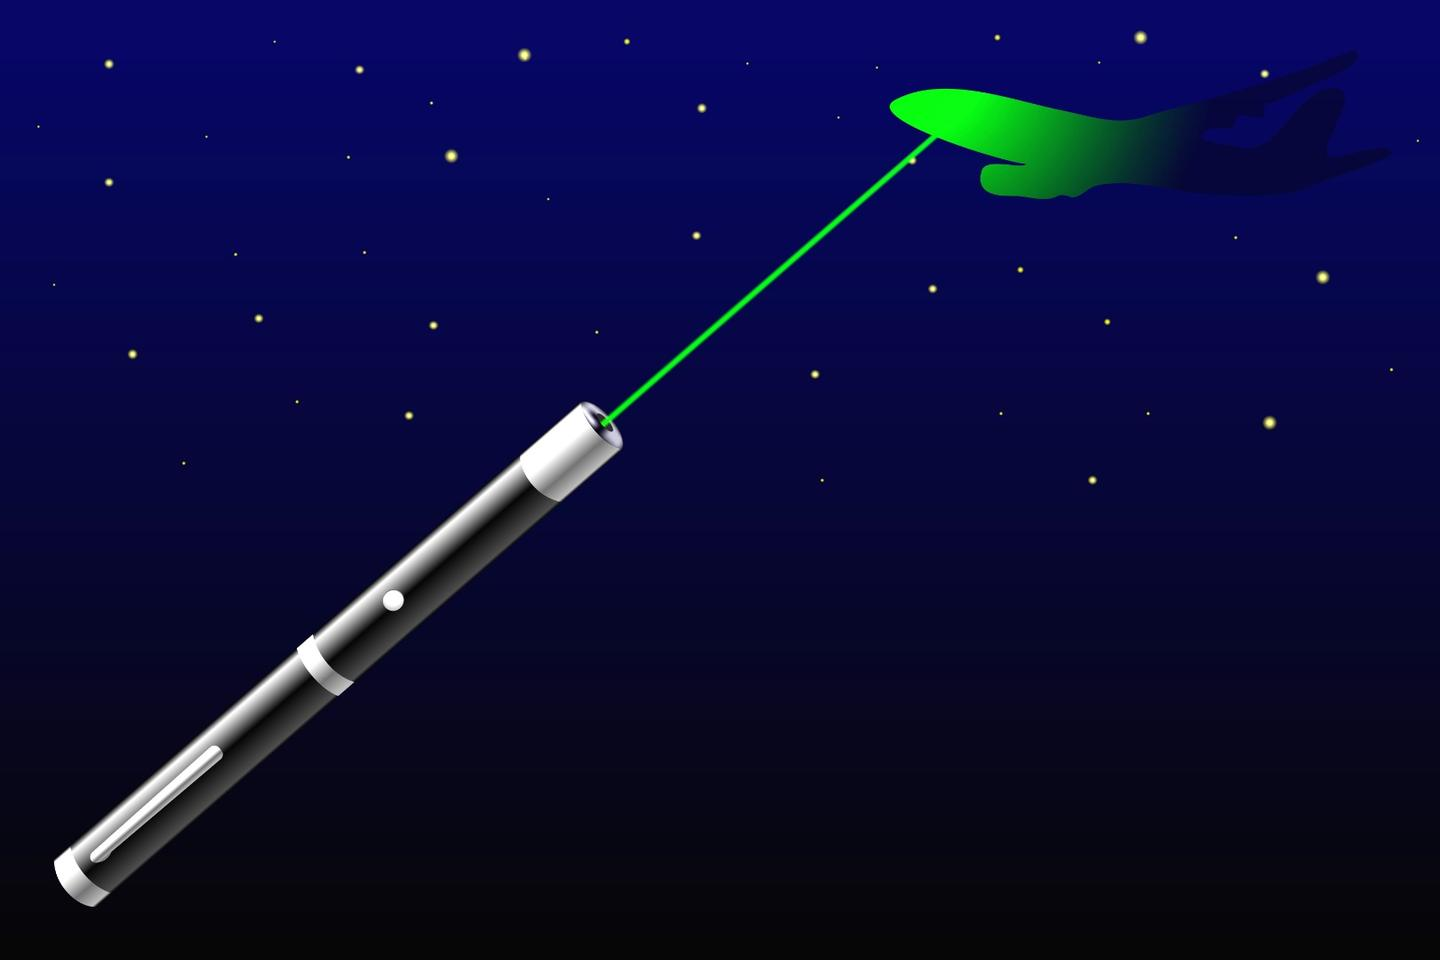 According to the US Federal Aviation Administration, there were 6,754 laser-pointer strikes on aircraft in 2017